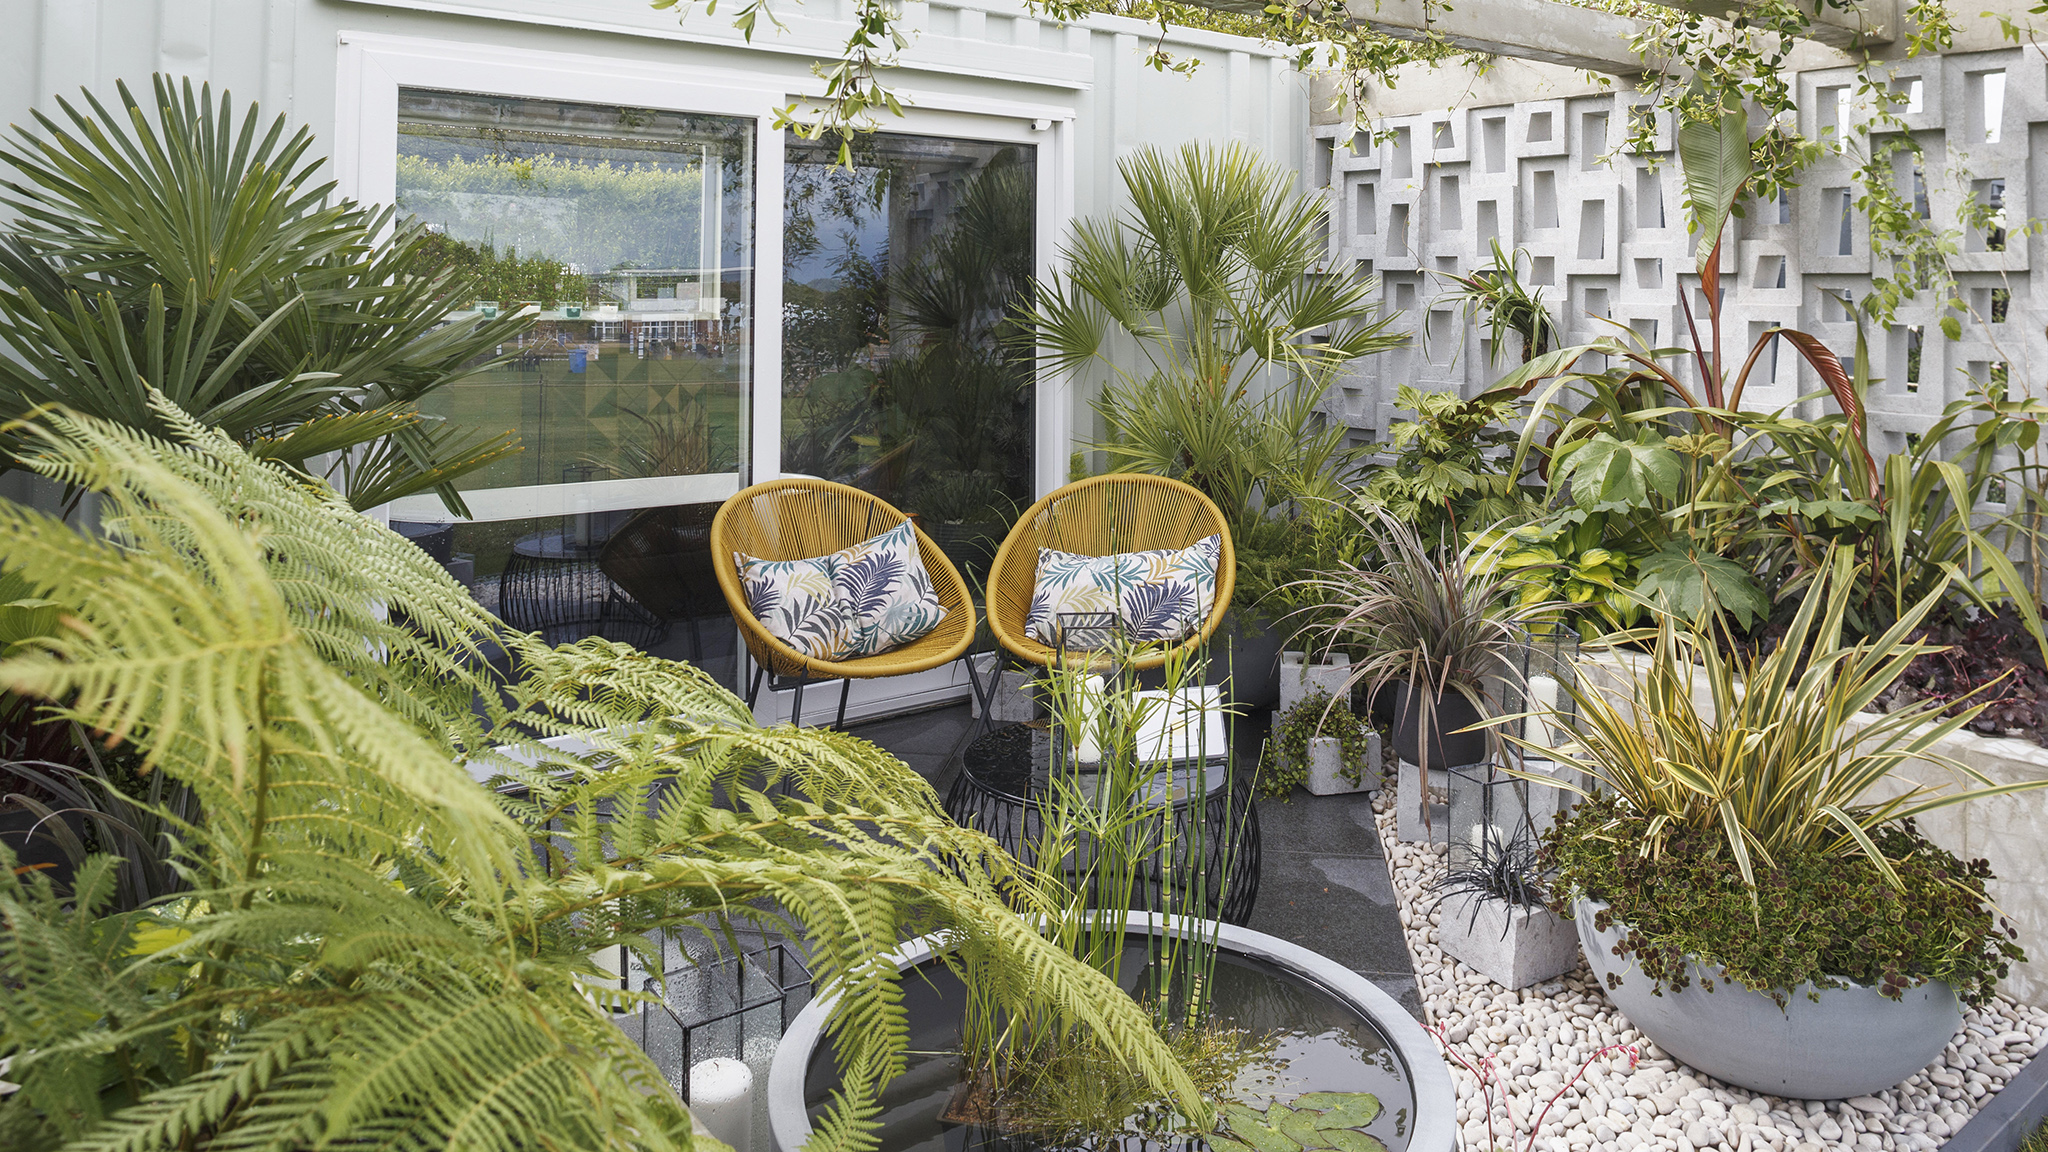 Furnish With Foliage Statement Plants For A Balcony Or Patio Financial Times